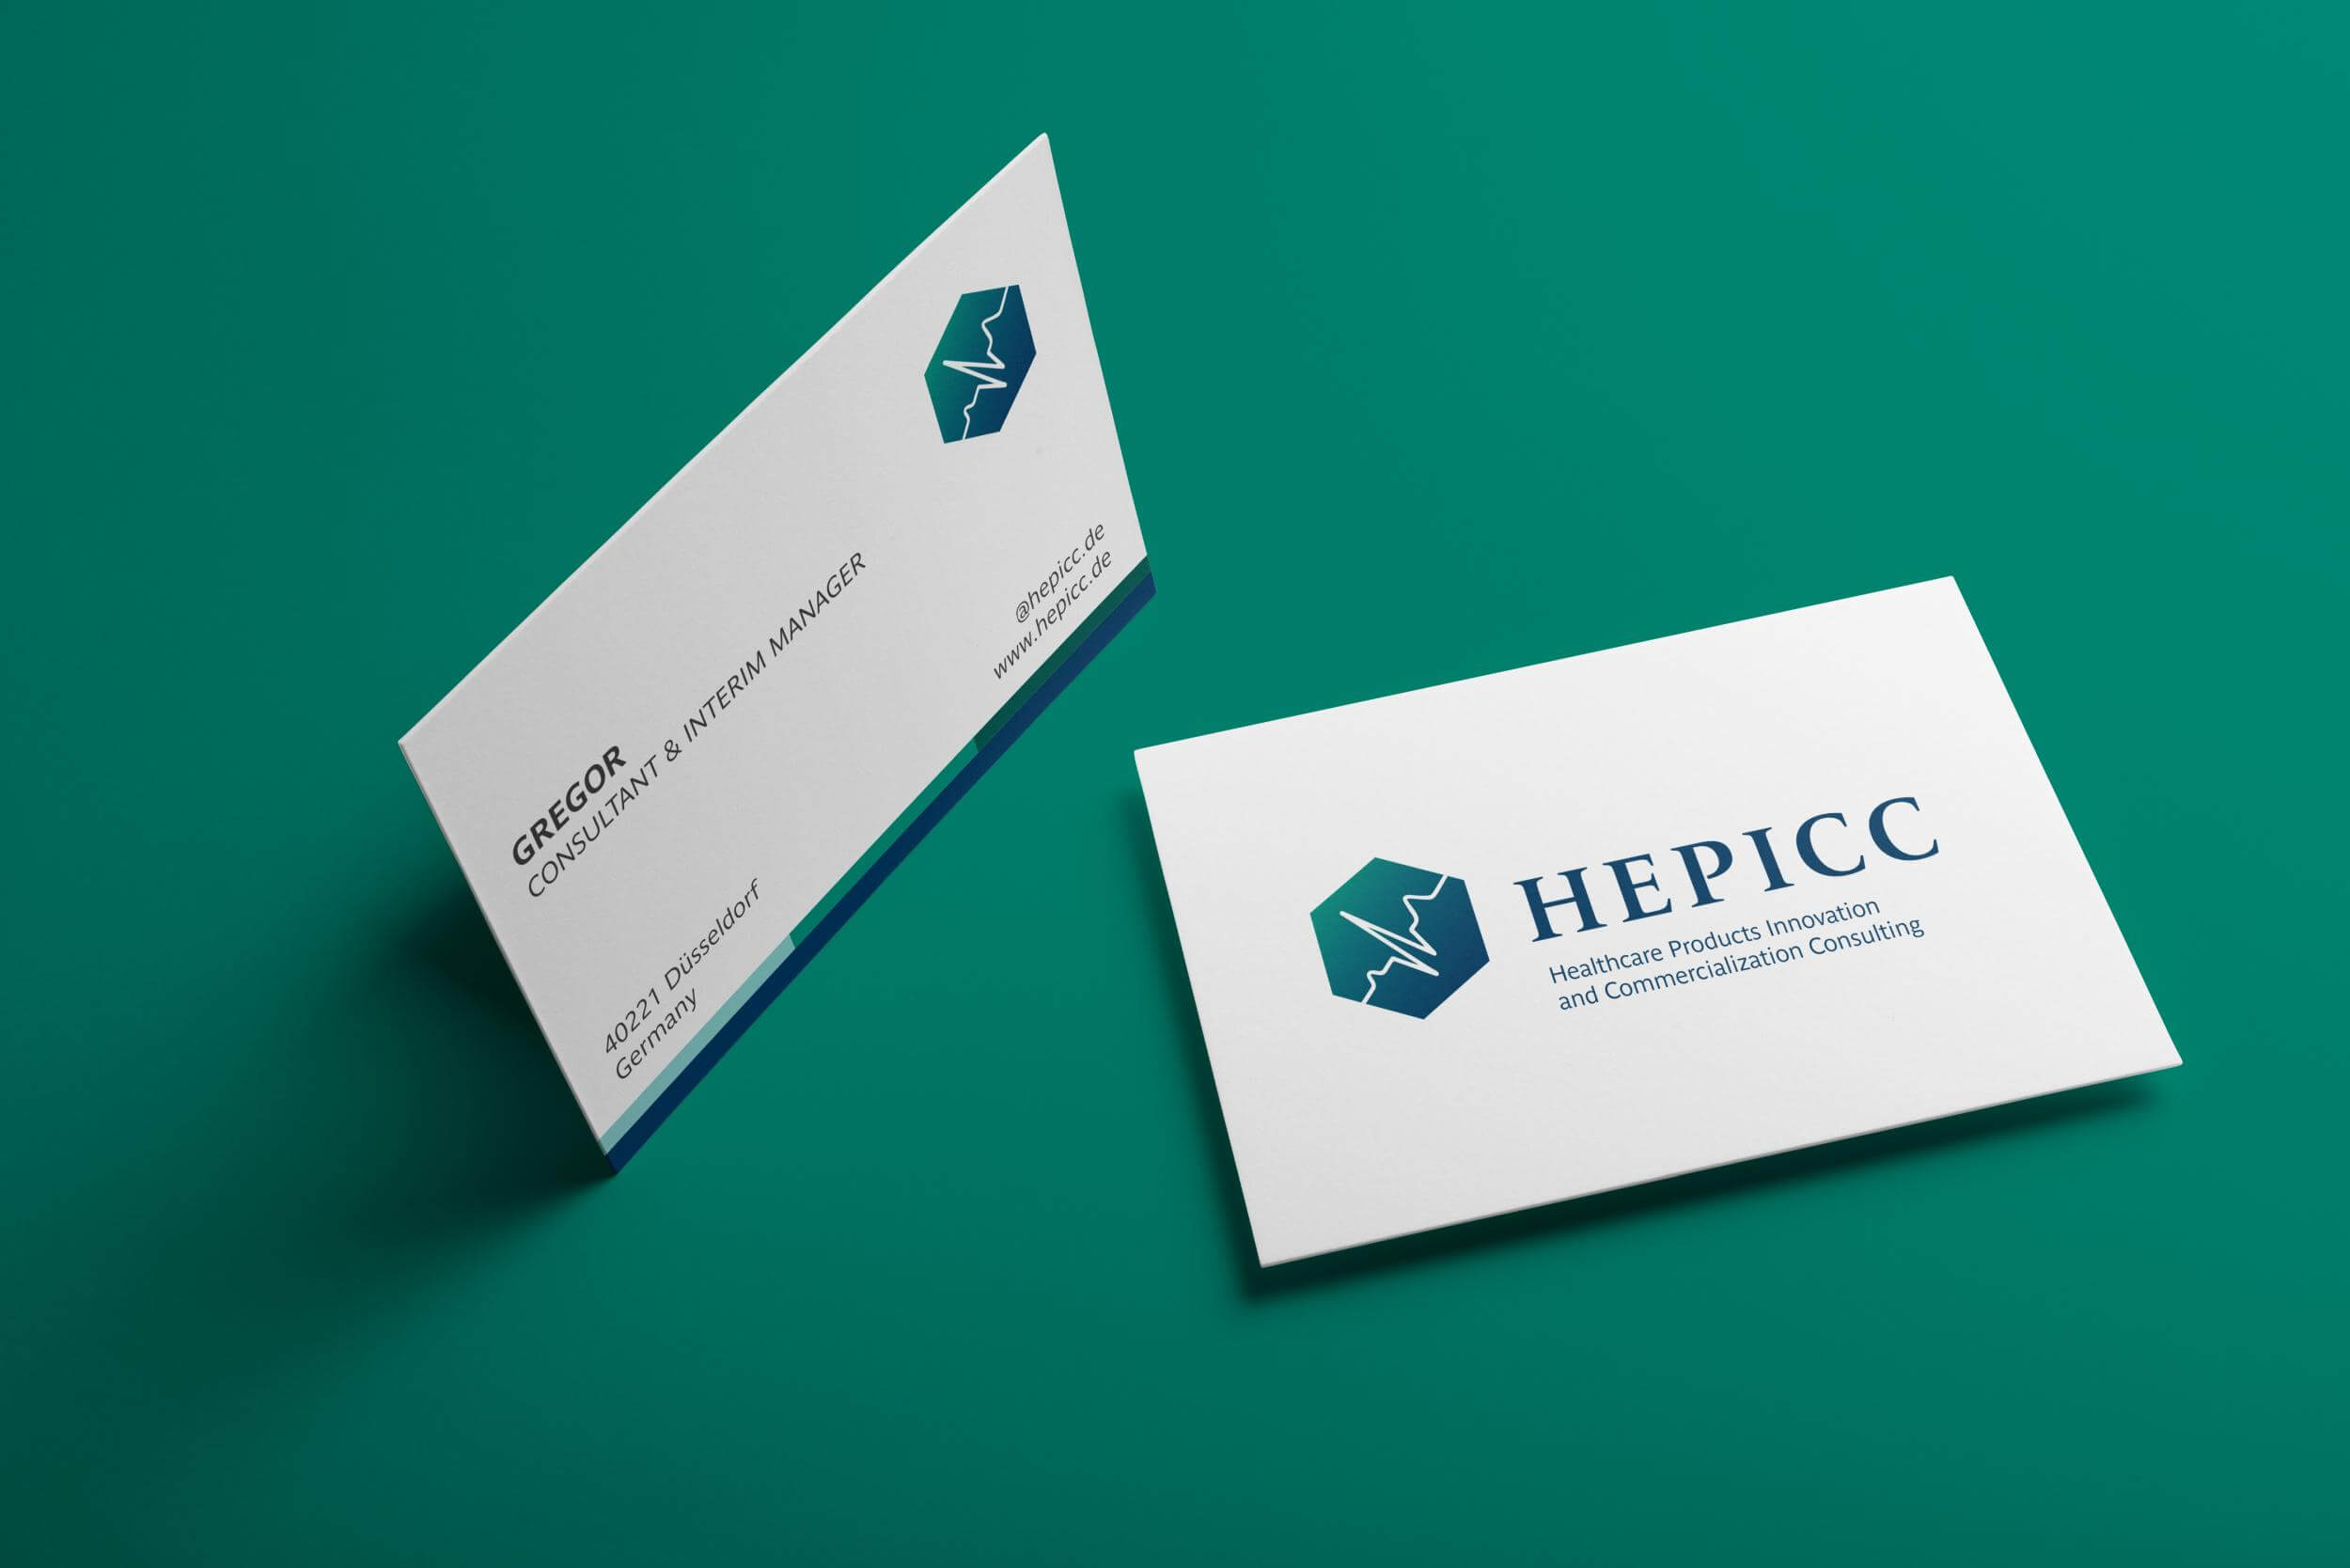 //www.invenzio.pl/wp-content/uploads/2019/02/HEPICC-business-cards.jpg